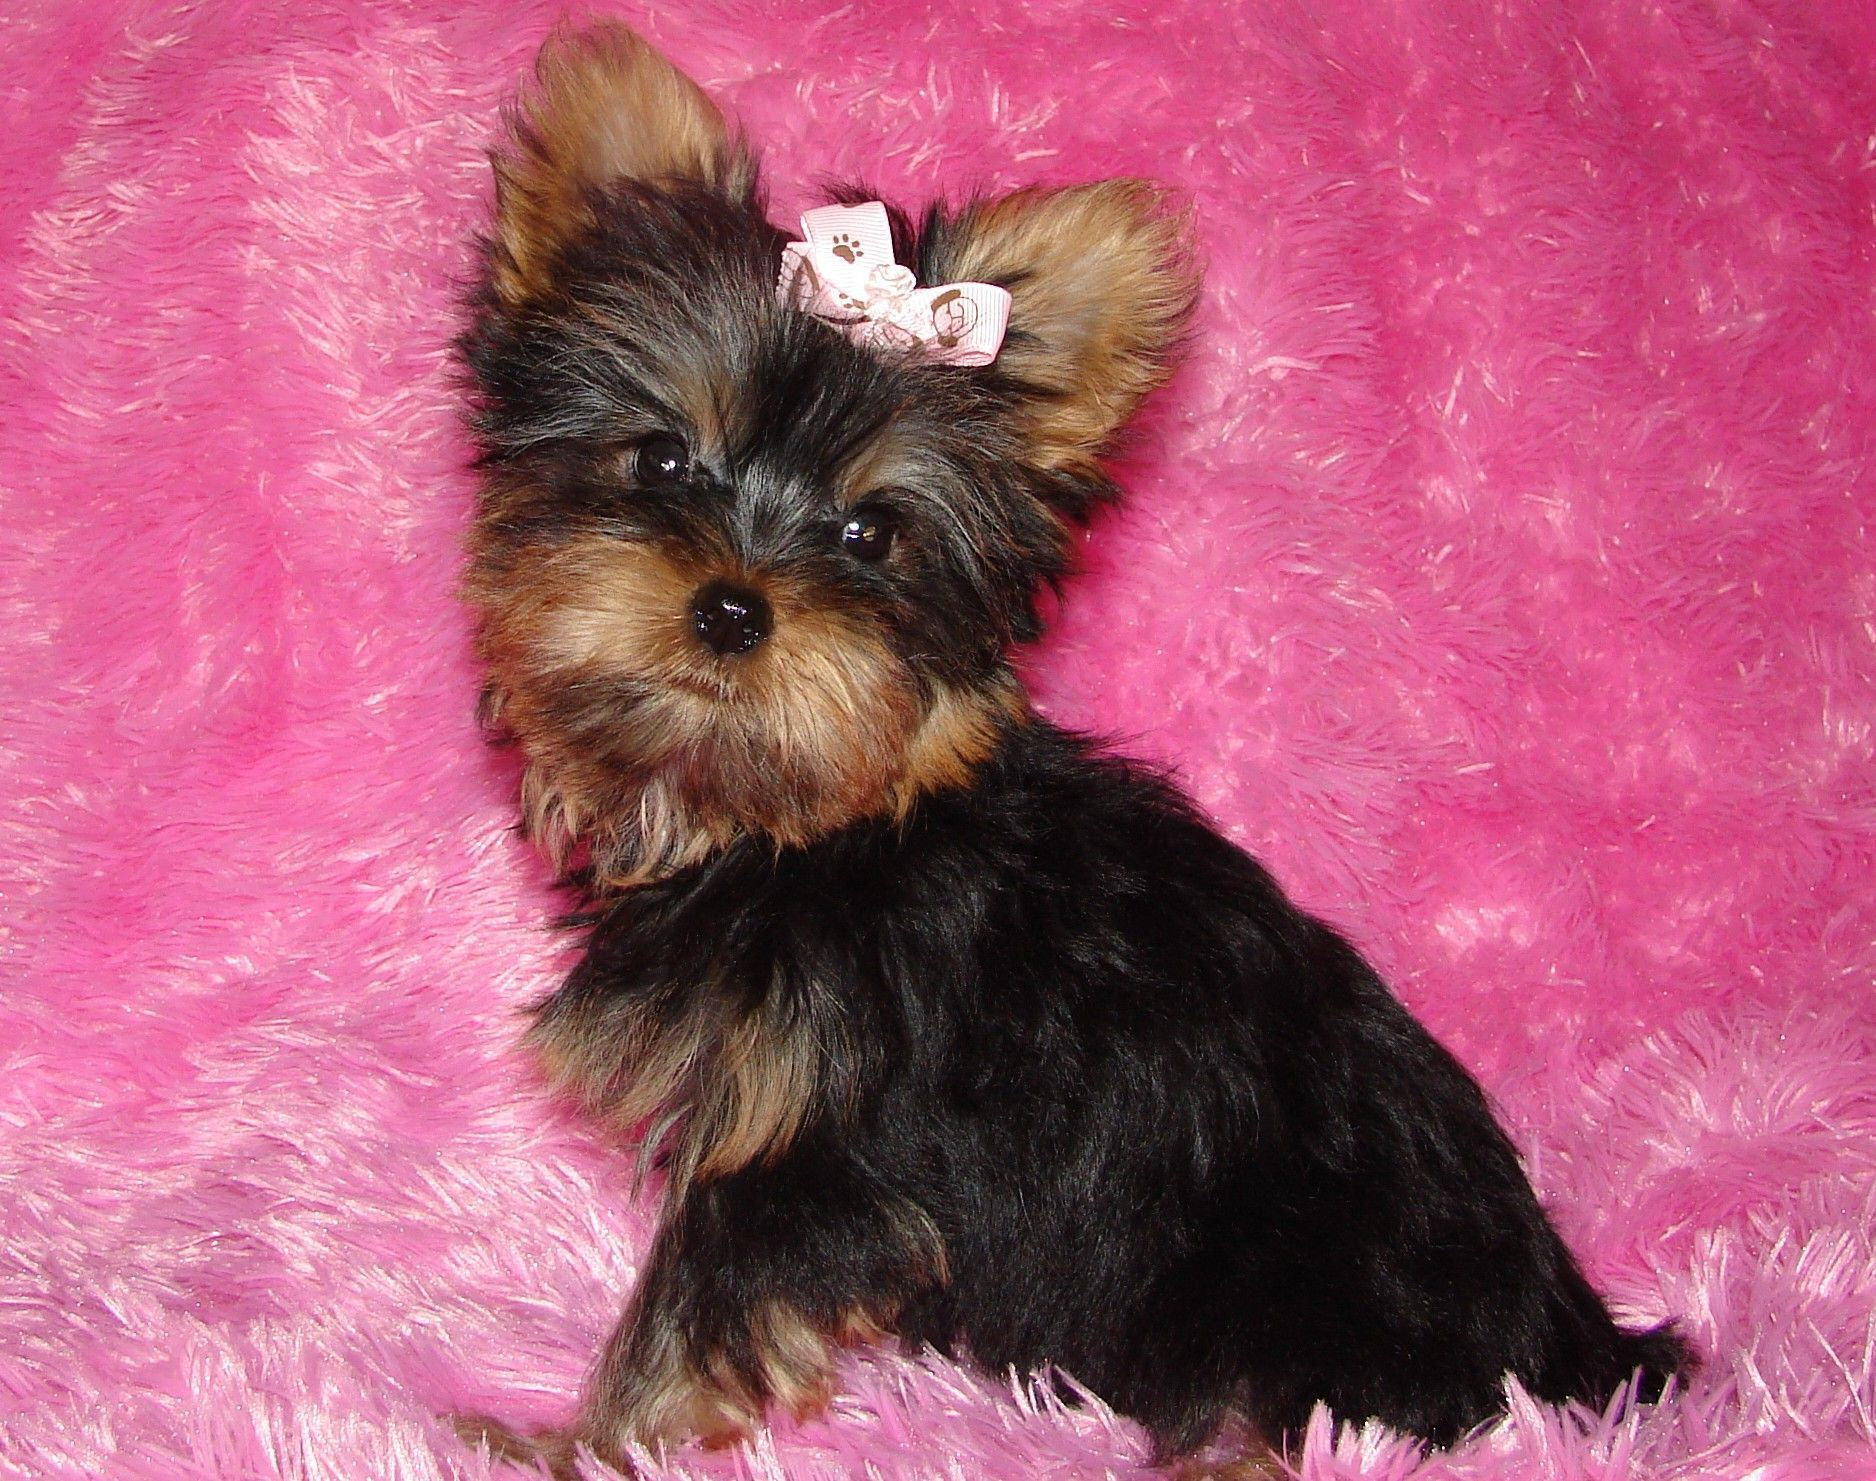 Yorkie Puppies Going To Live With Jennifer Dan In Nj Yorkiepuppynj Yorkie Puppy Yorkie Puppy For Sale Yorkie